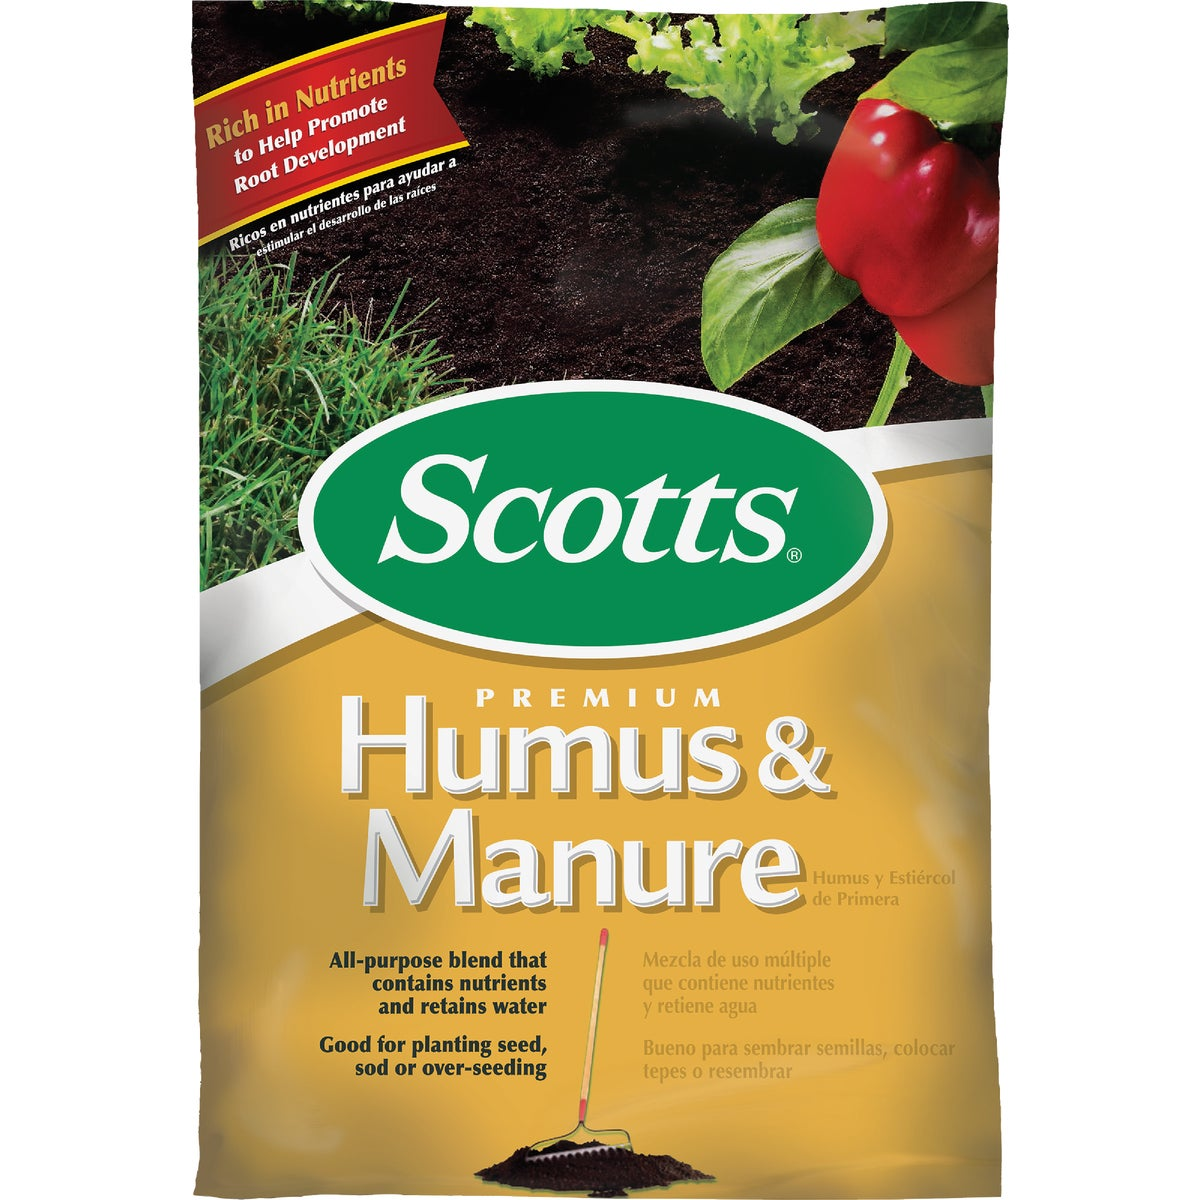 .75CF HUMAS & MANURE - 71530750 by Scotts Organics